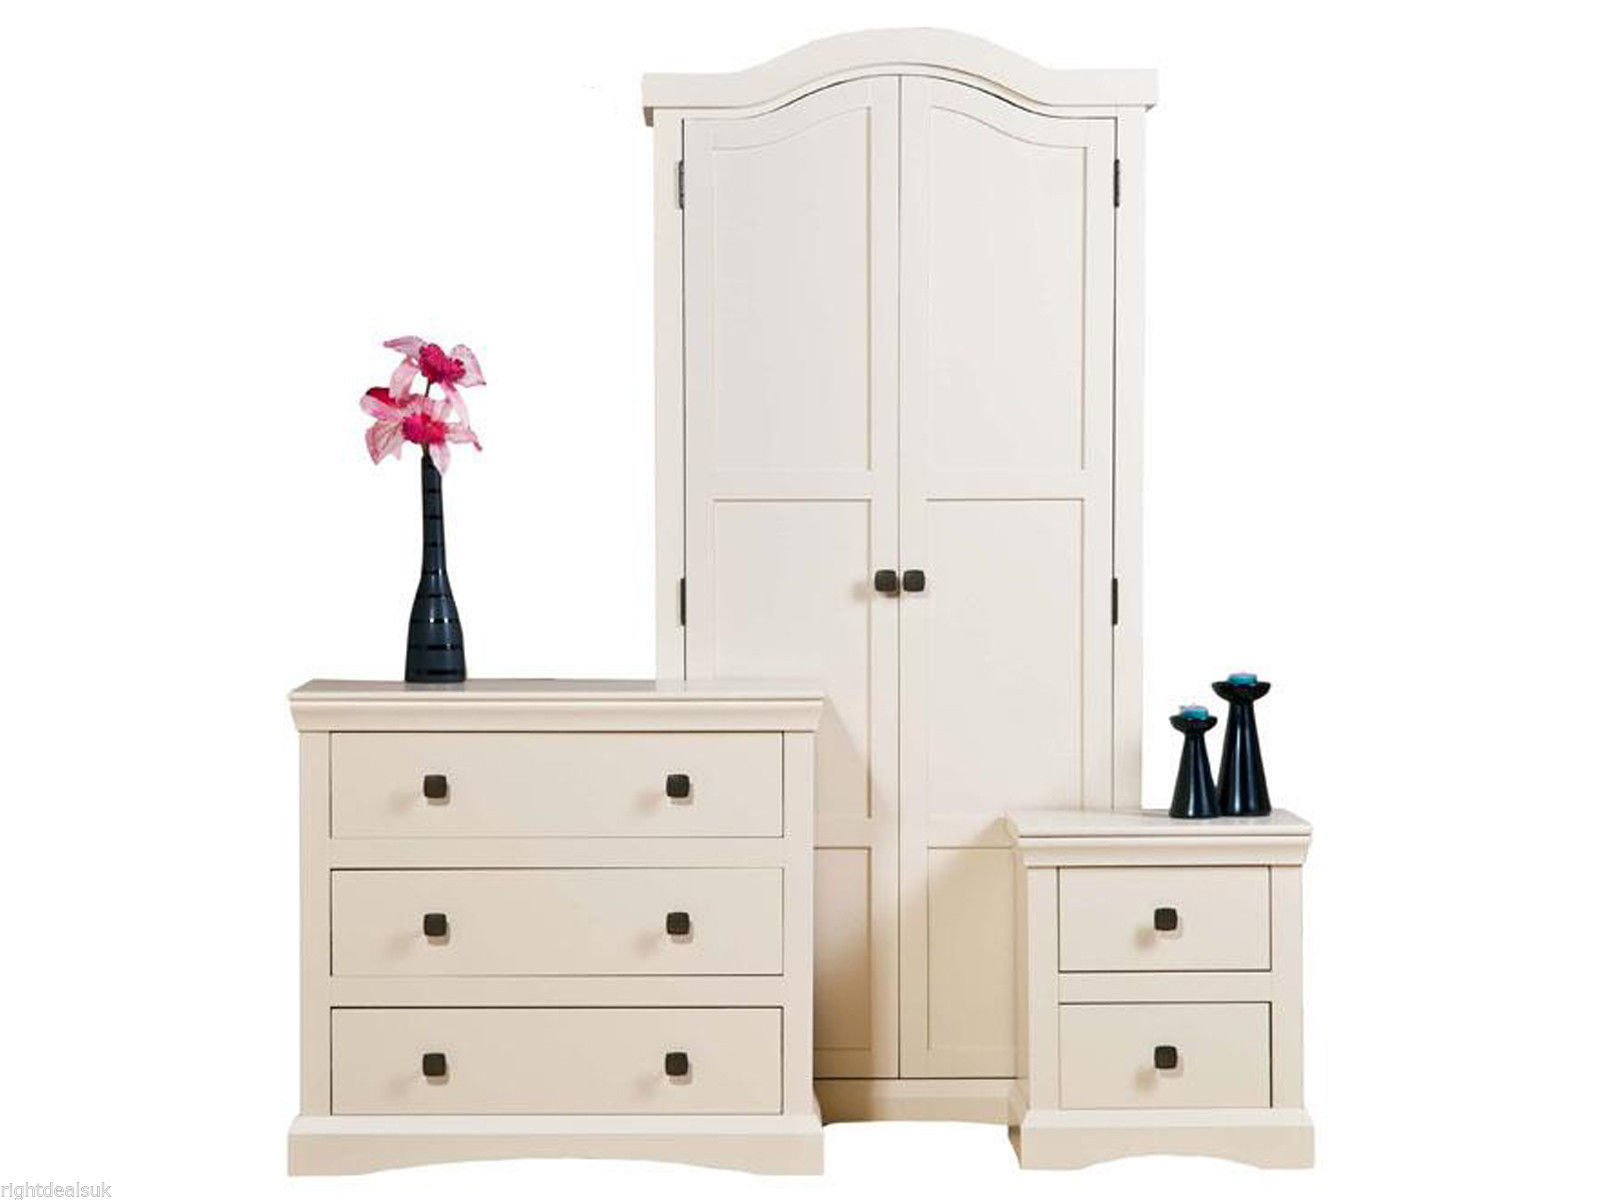 3 Piece Bedroom Set Cream Painted Wood Shabby Chic Wardrobe Drawers Bedsi